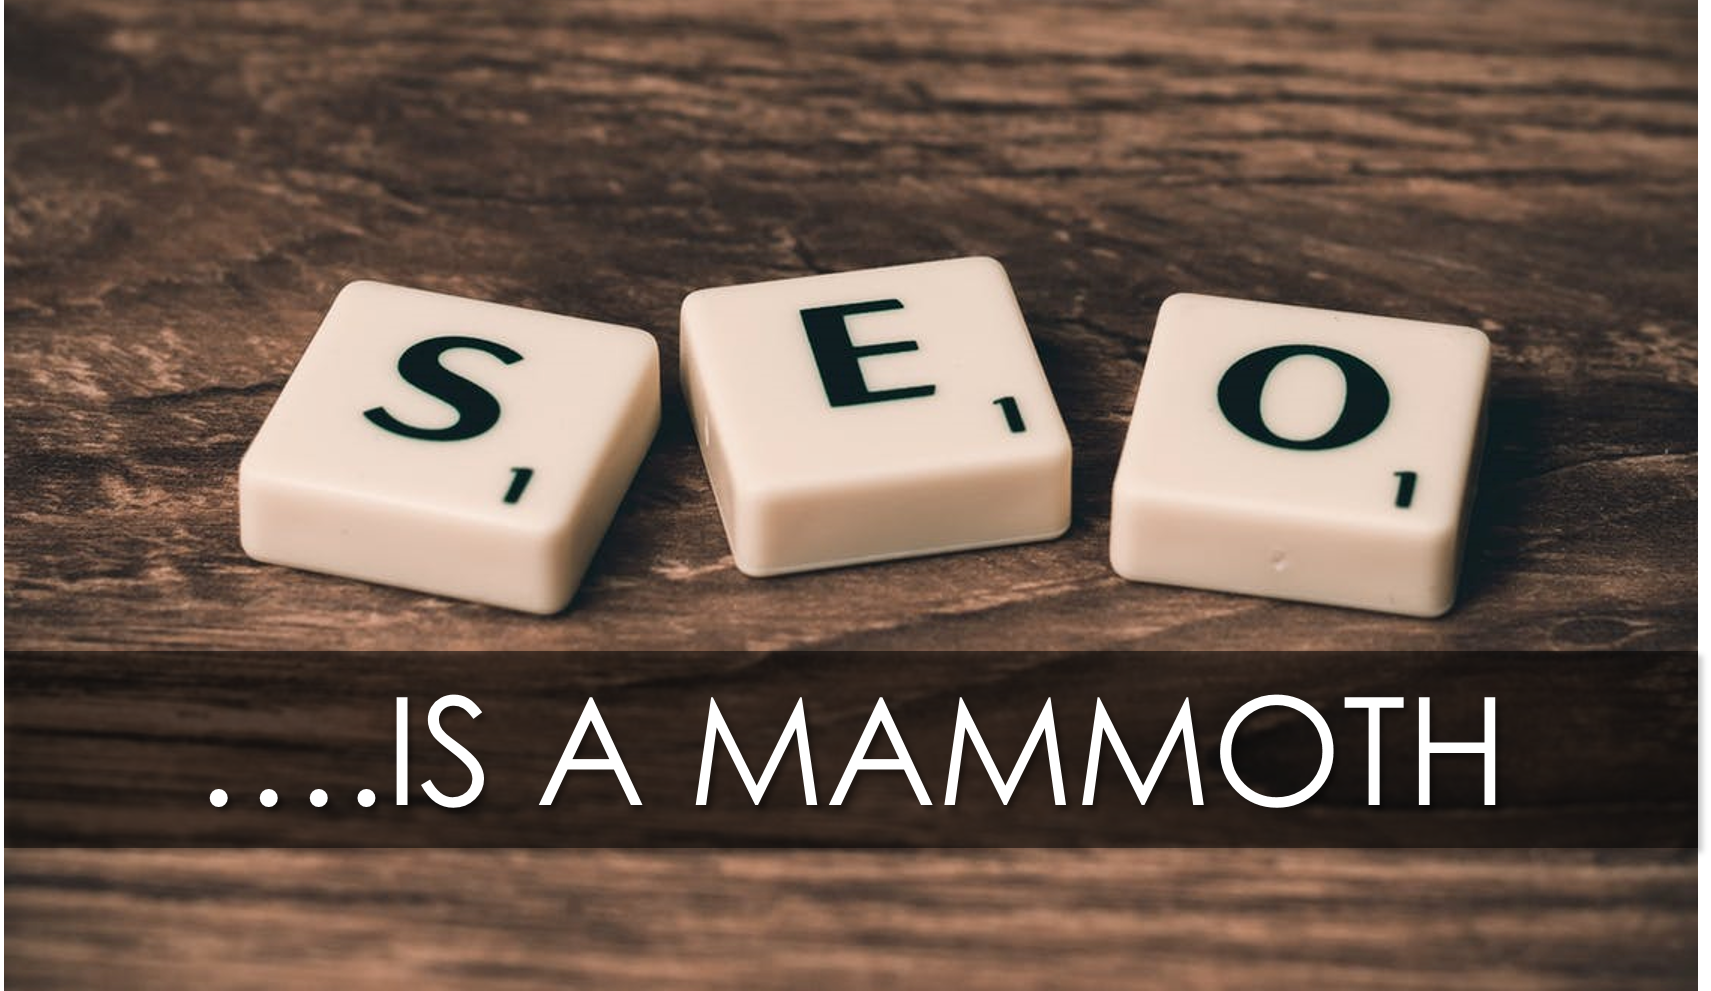 seo mammoth featured